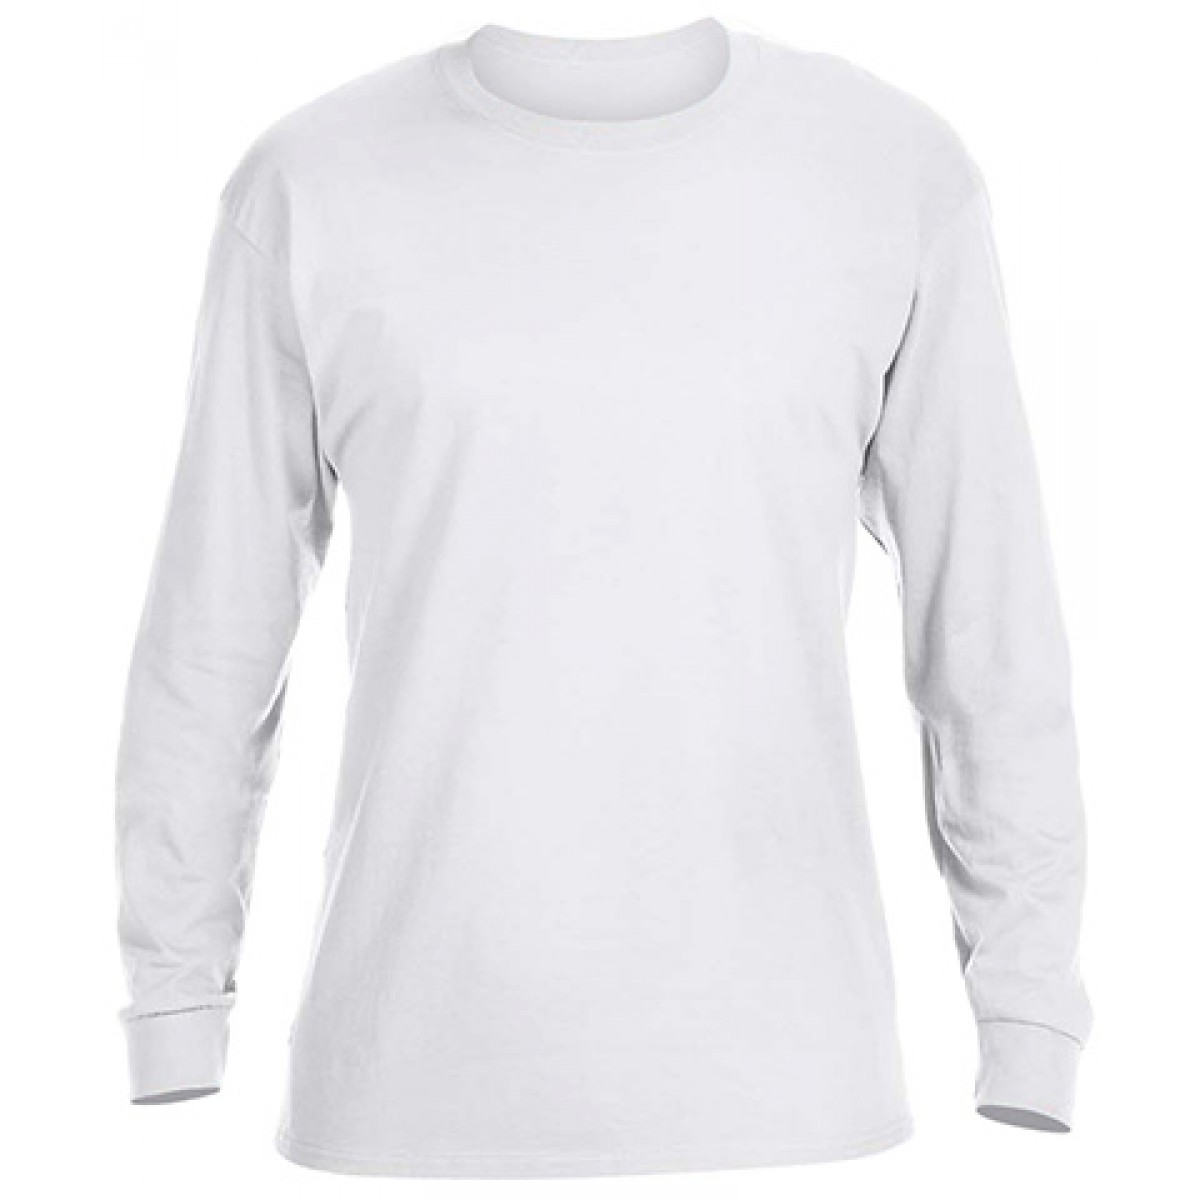 Heavy Cotton Long-Sleeve Adidas Shirt-White-YL